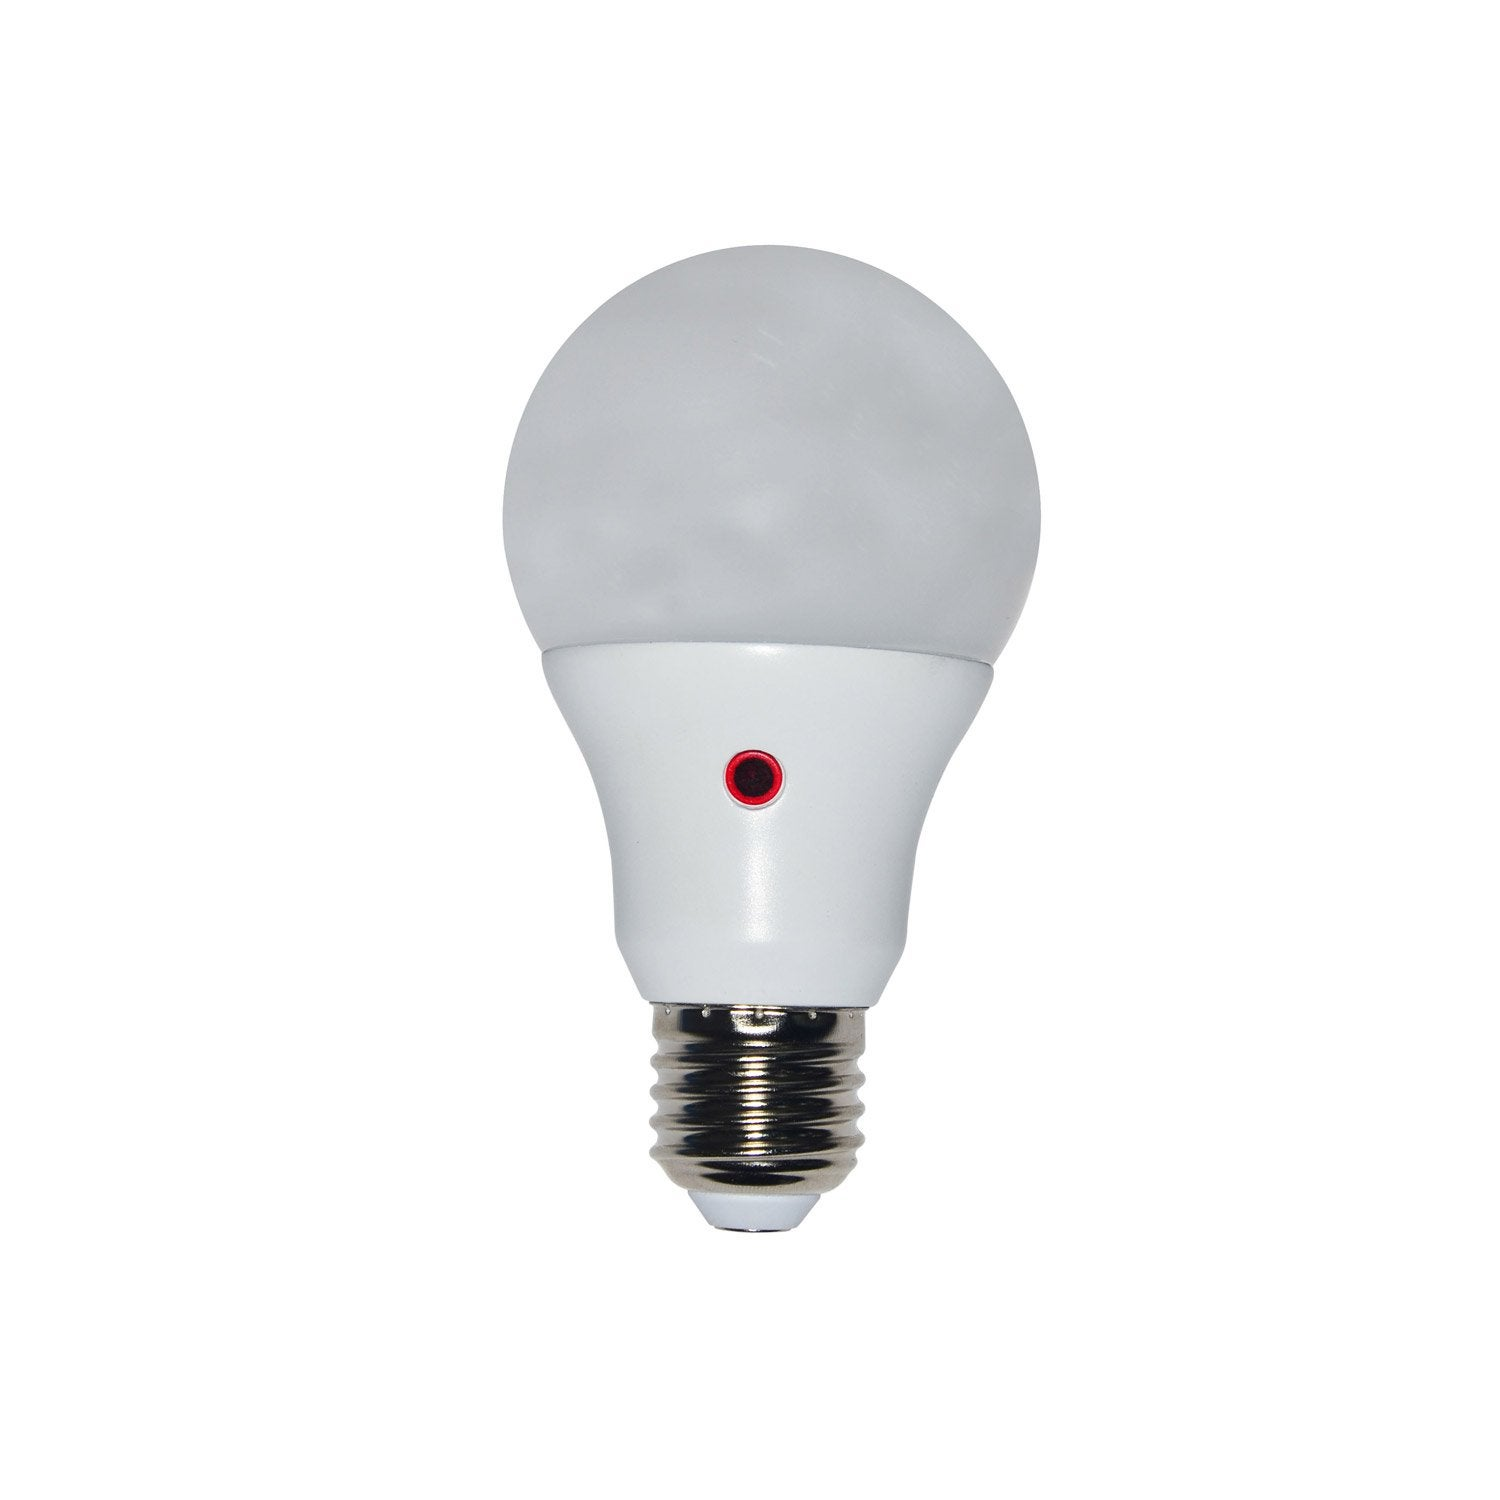 Ampoule Led Lexman Simple Lexman Gu Watts X With Ampoule Led Lexman